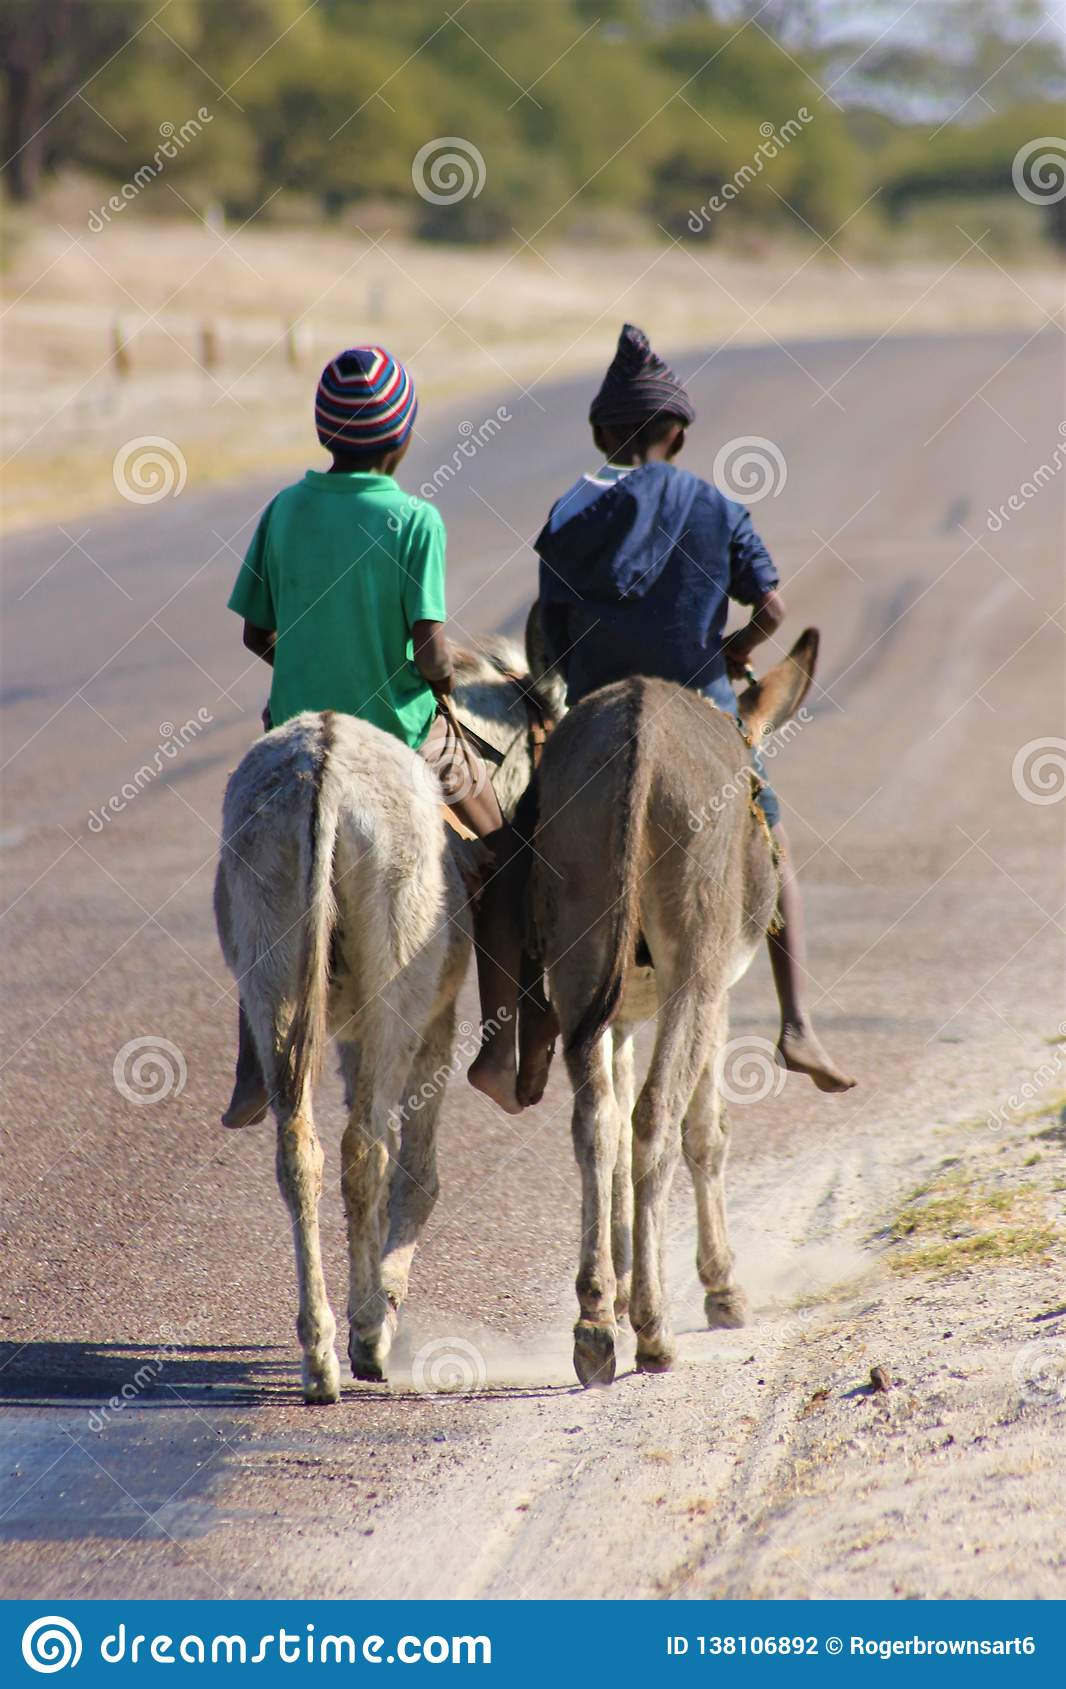 Two boys riding donkeys in Africa